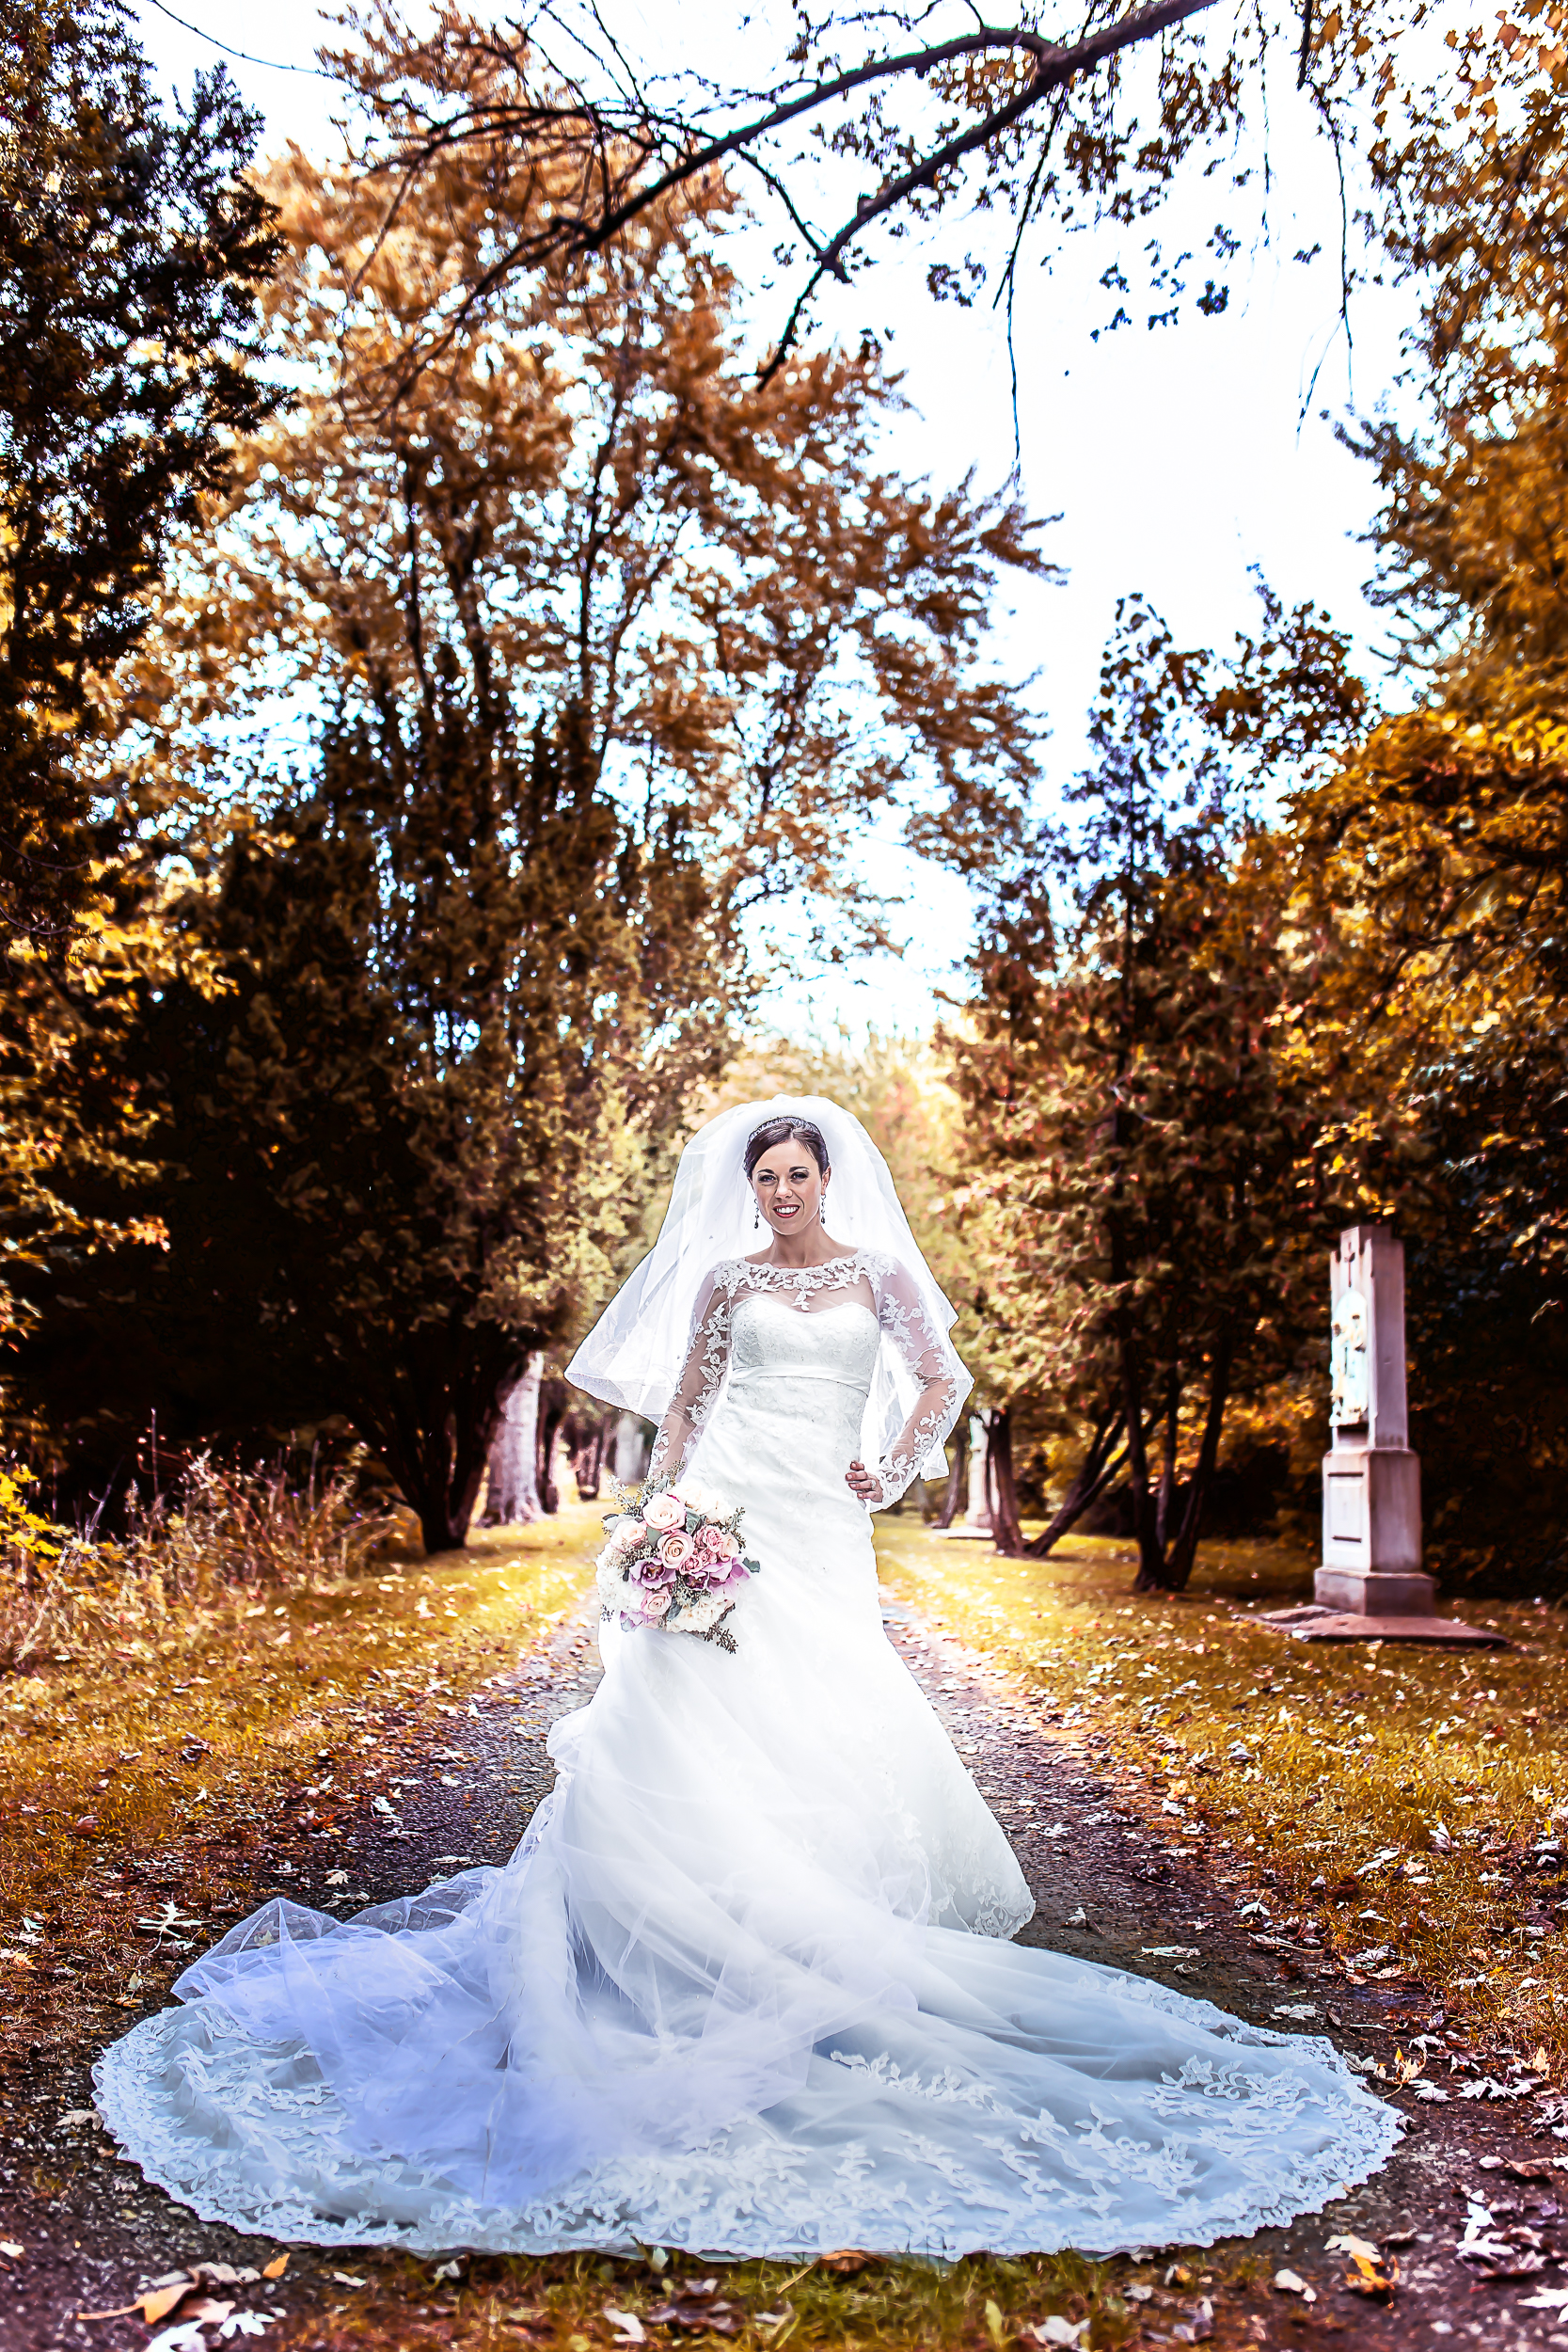 lorrina&Jacob-1045-Edit.jpg